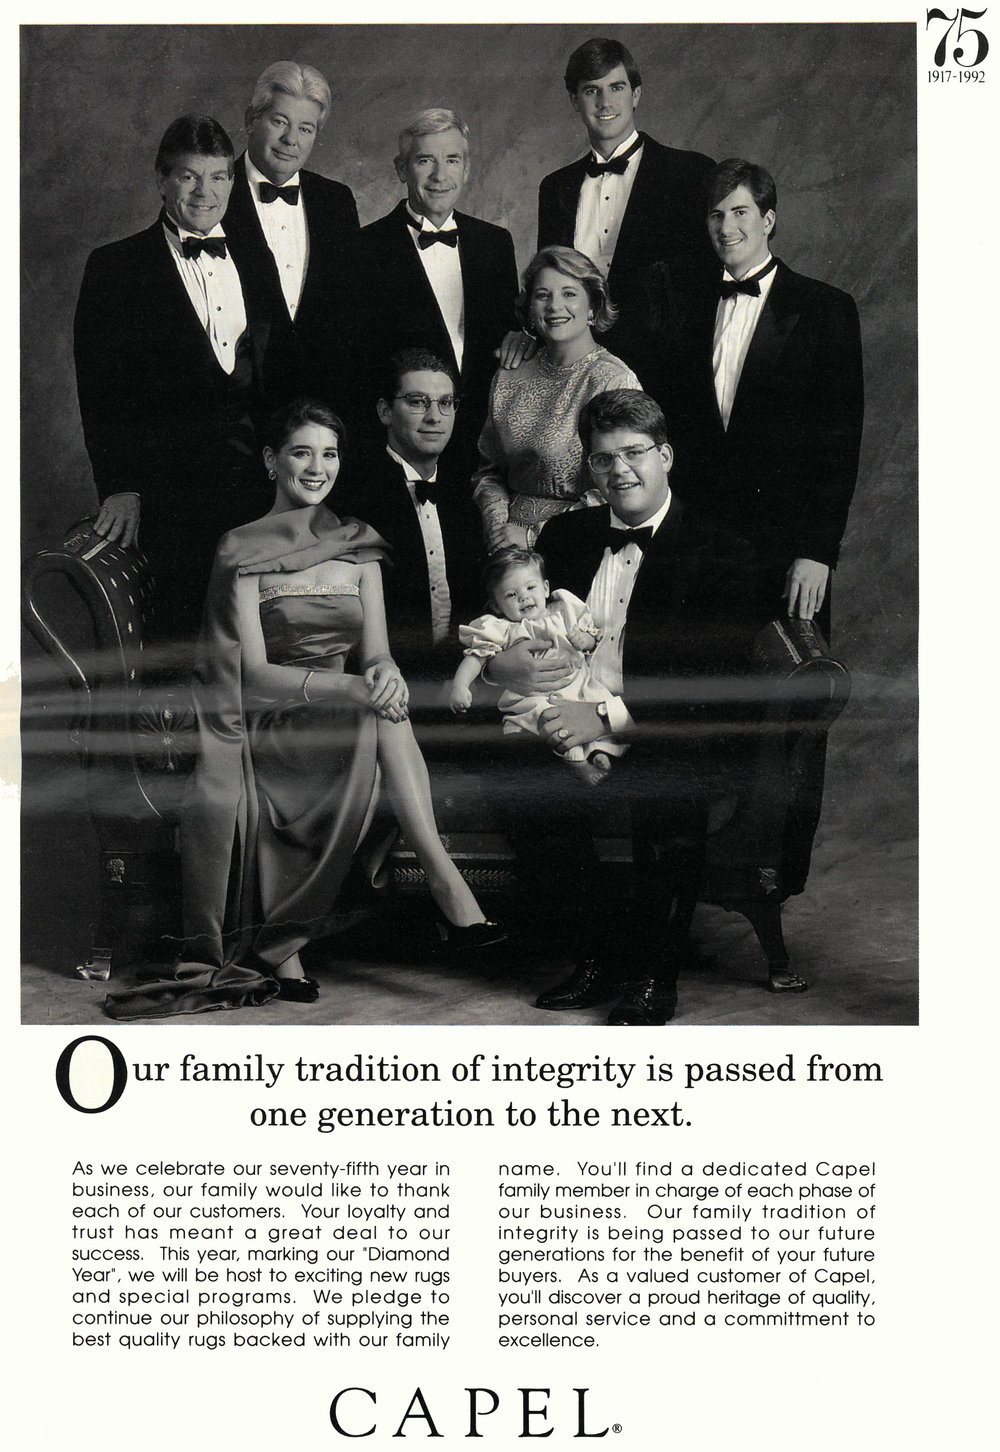 1992 Capel 75th Anniversary ad